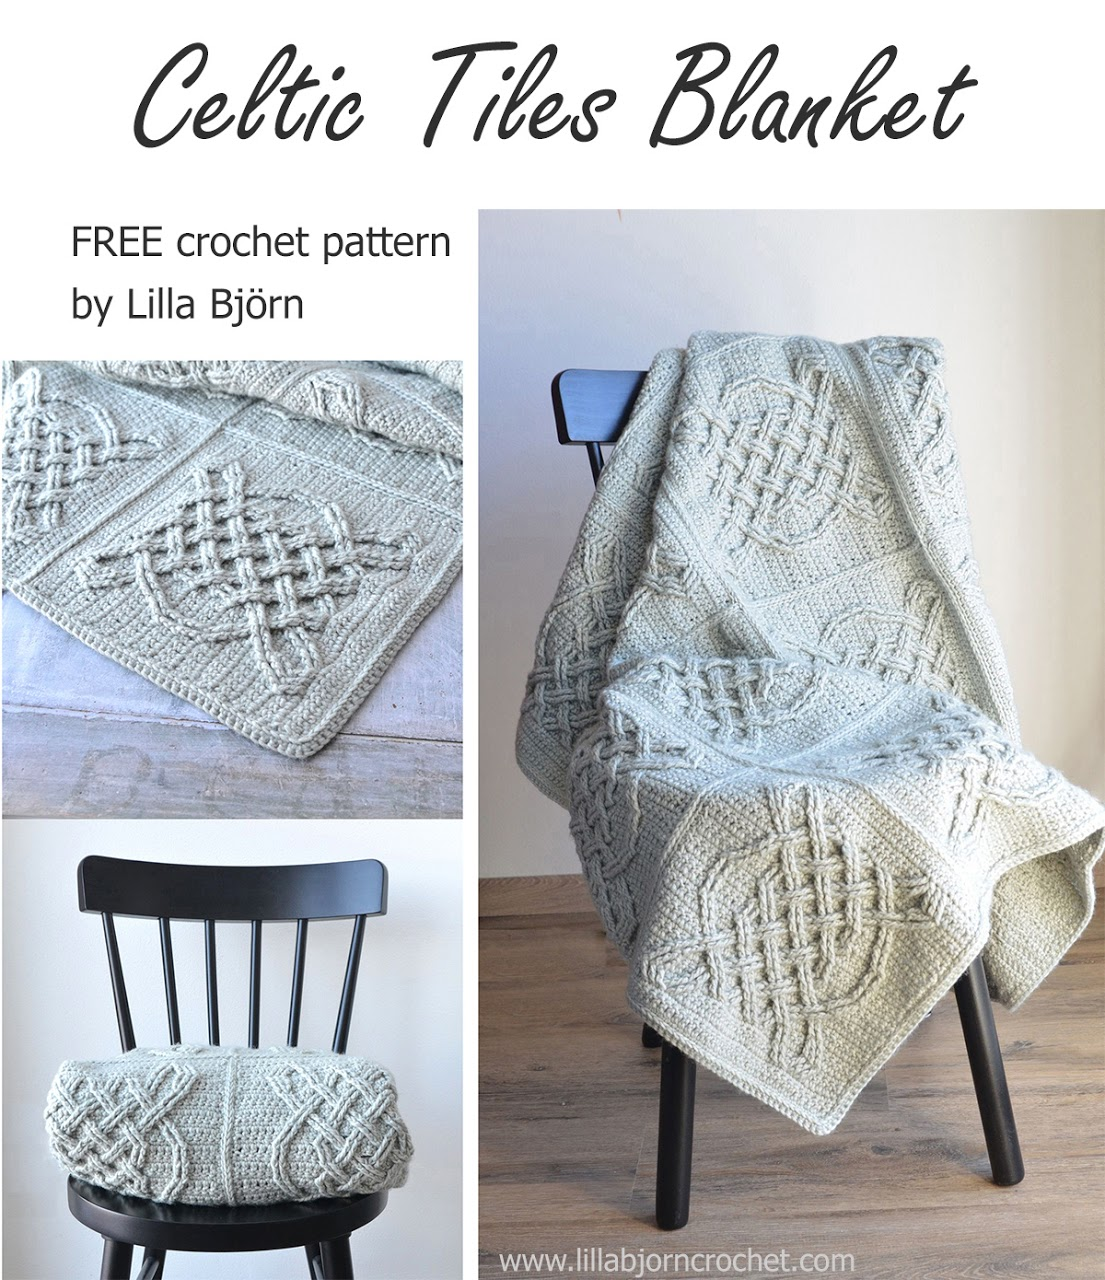 Celtic Tiles Blanket by Lilla Bjorn: http://www.lillabjorncrochet.com/2017/02/celtic-tiles-blanket-free-overlay.html